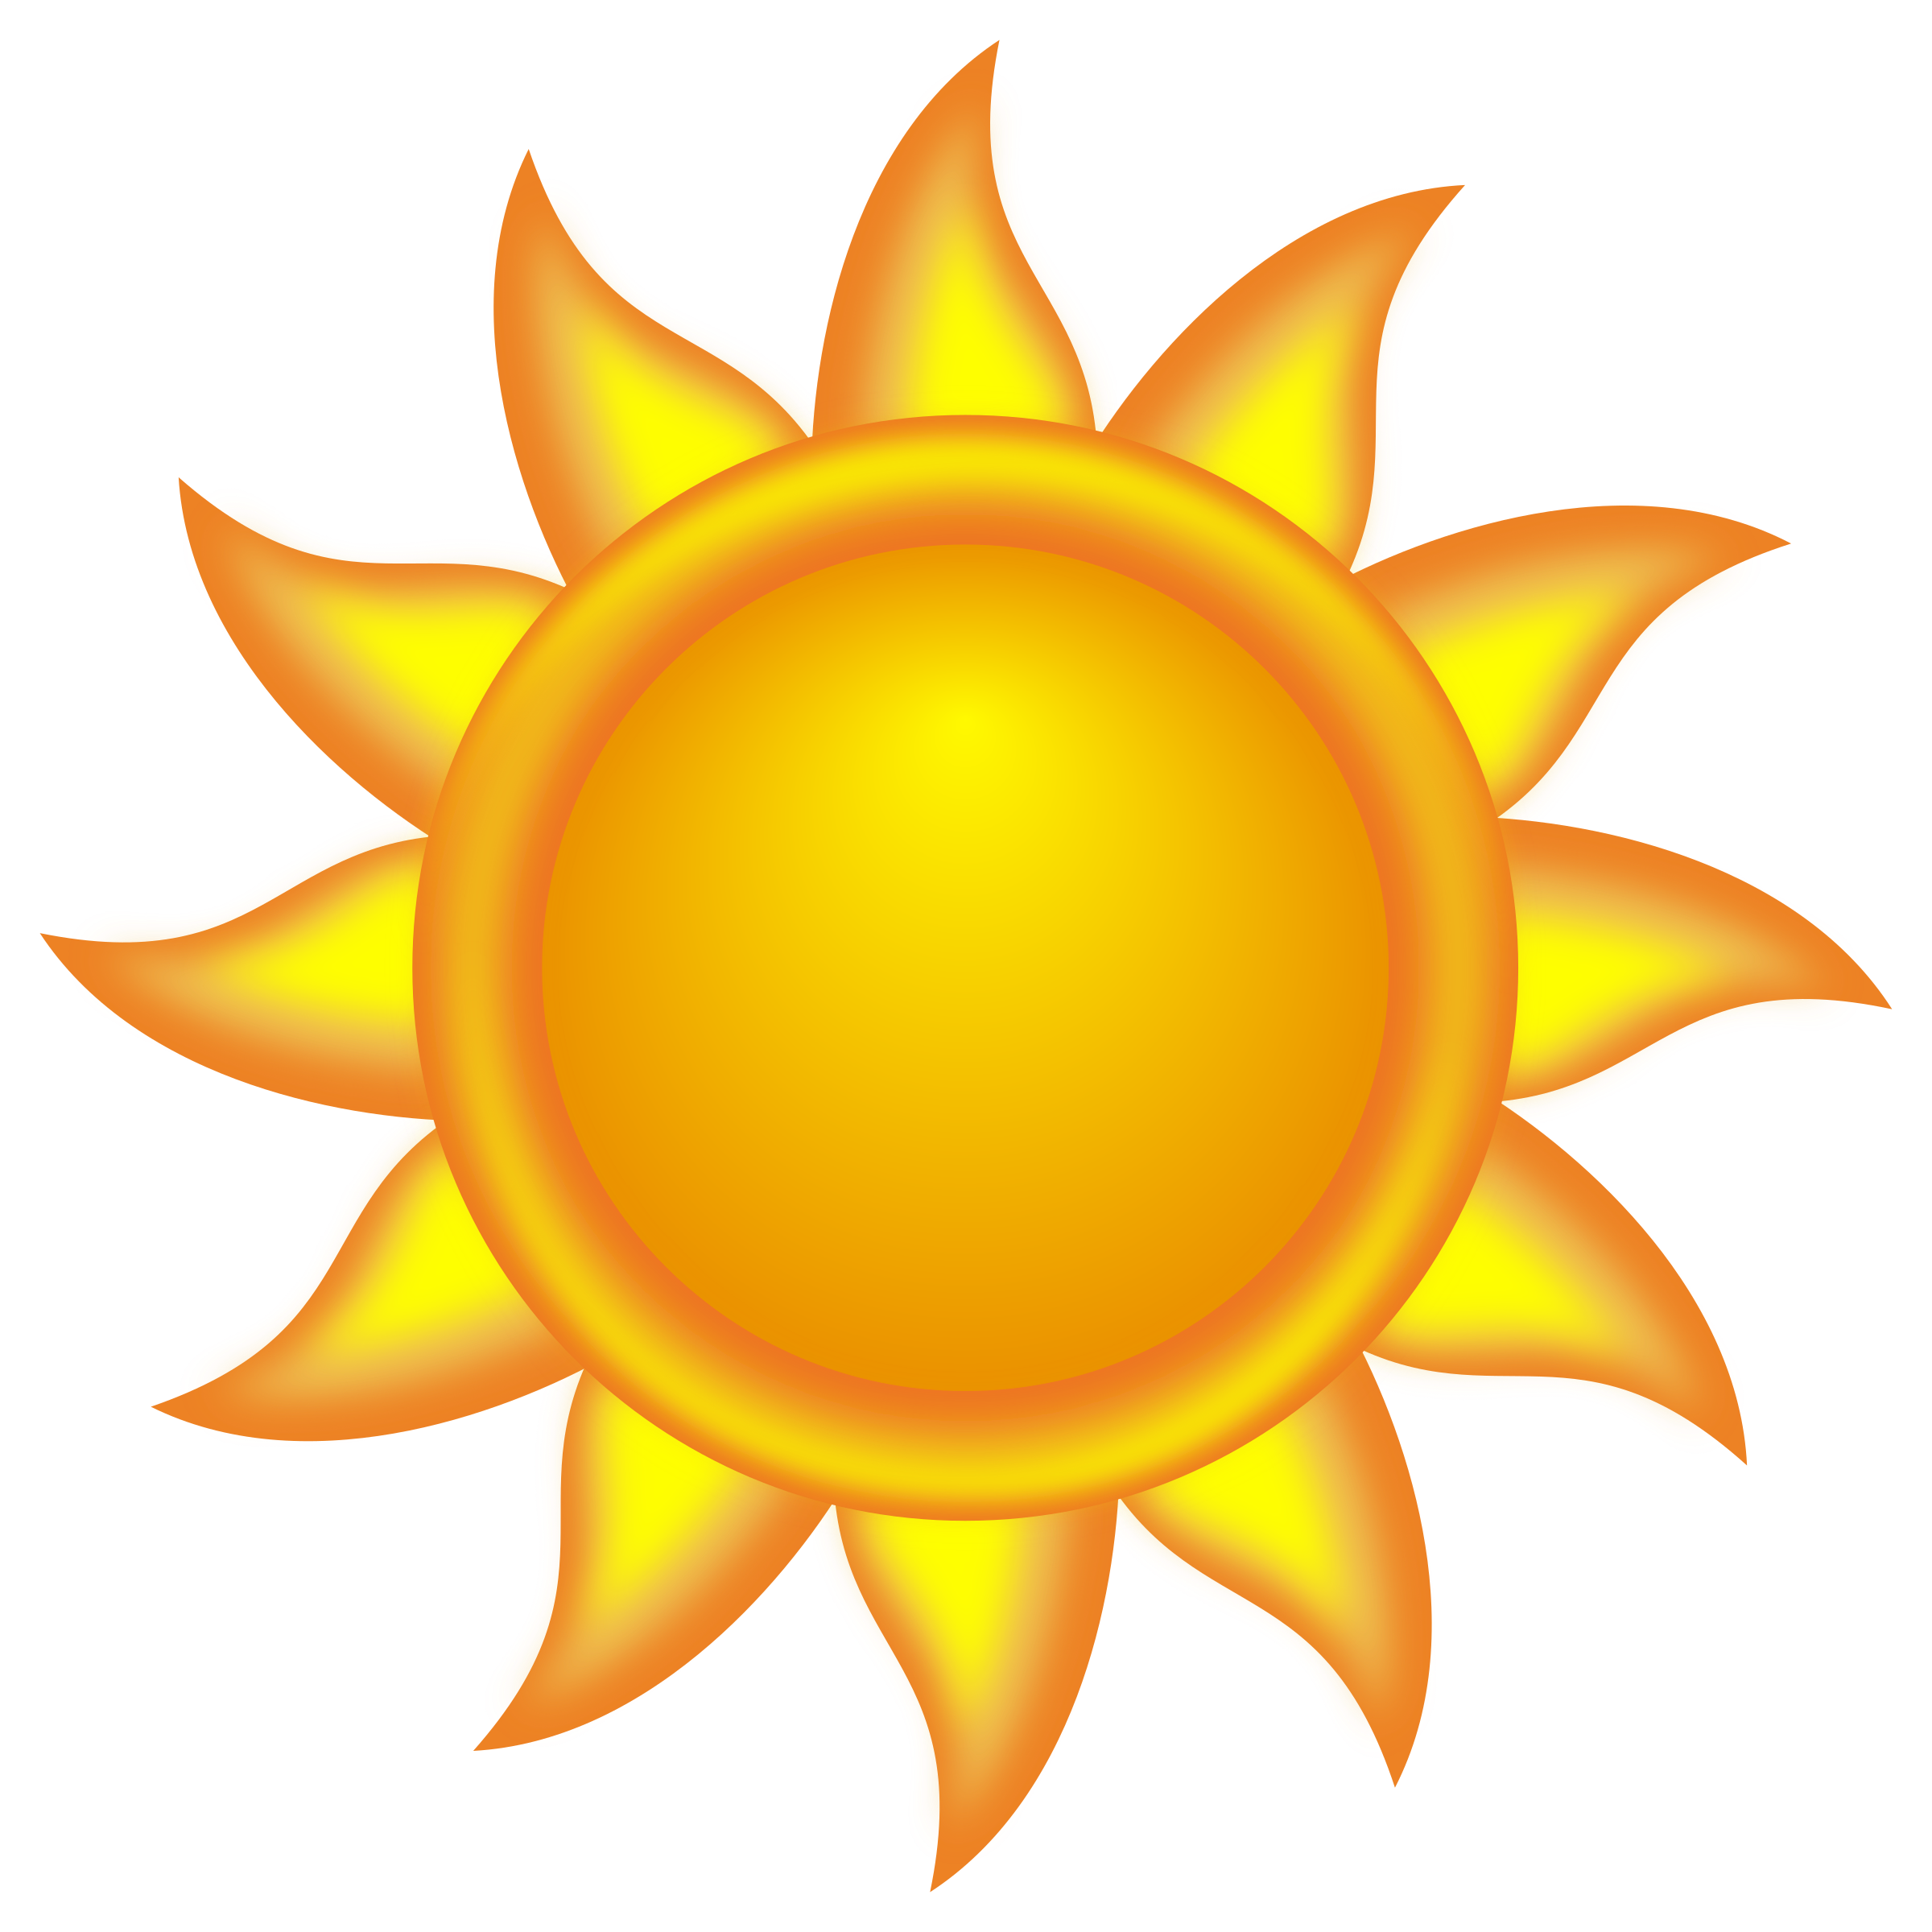 Sunlight clipart summer for free download and use images in.